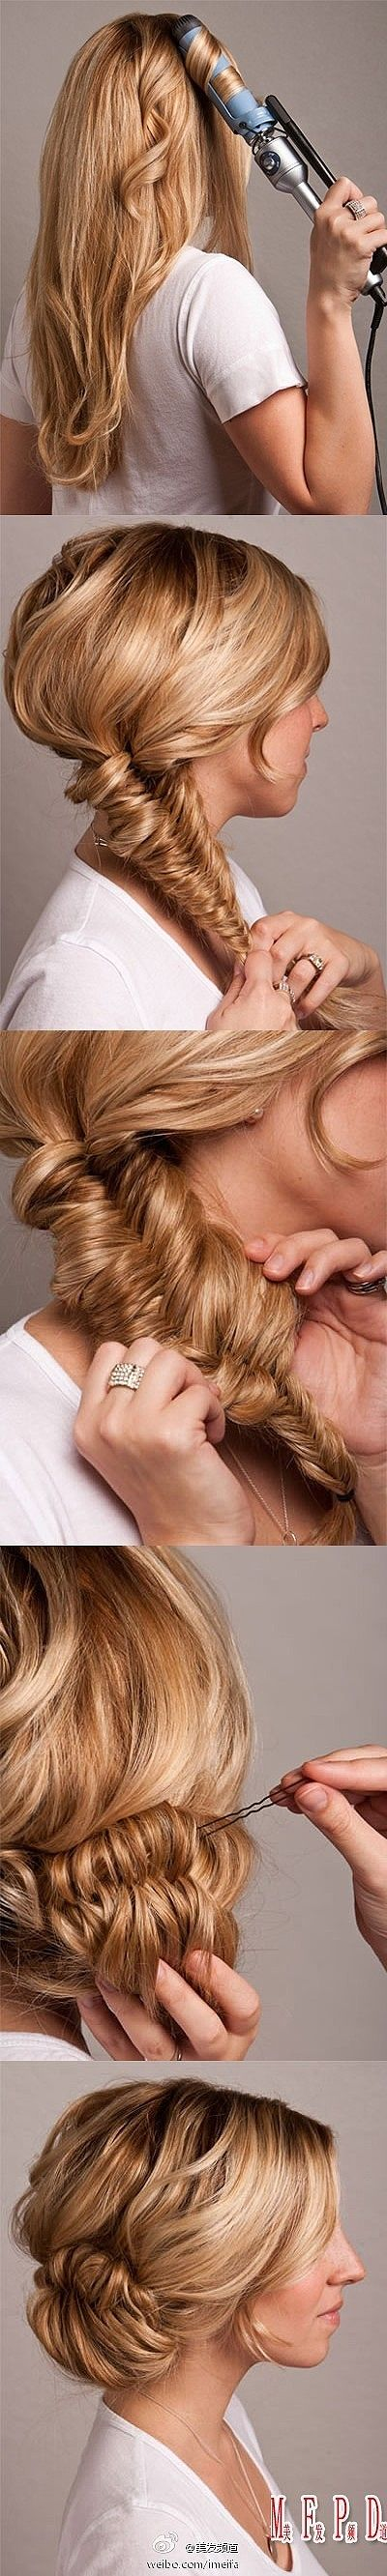 simple wedding or special event up-do - twisted/braided side bun